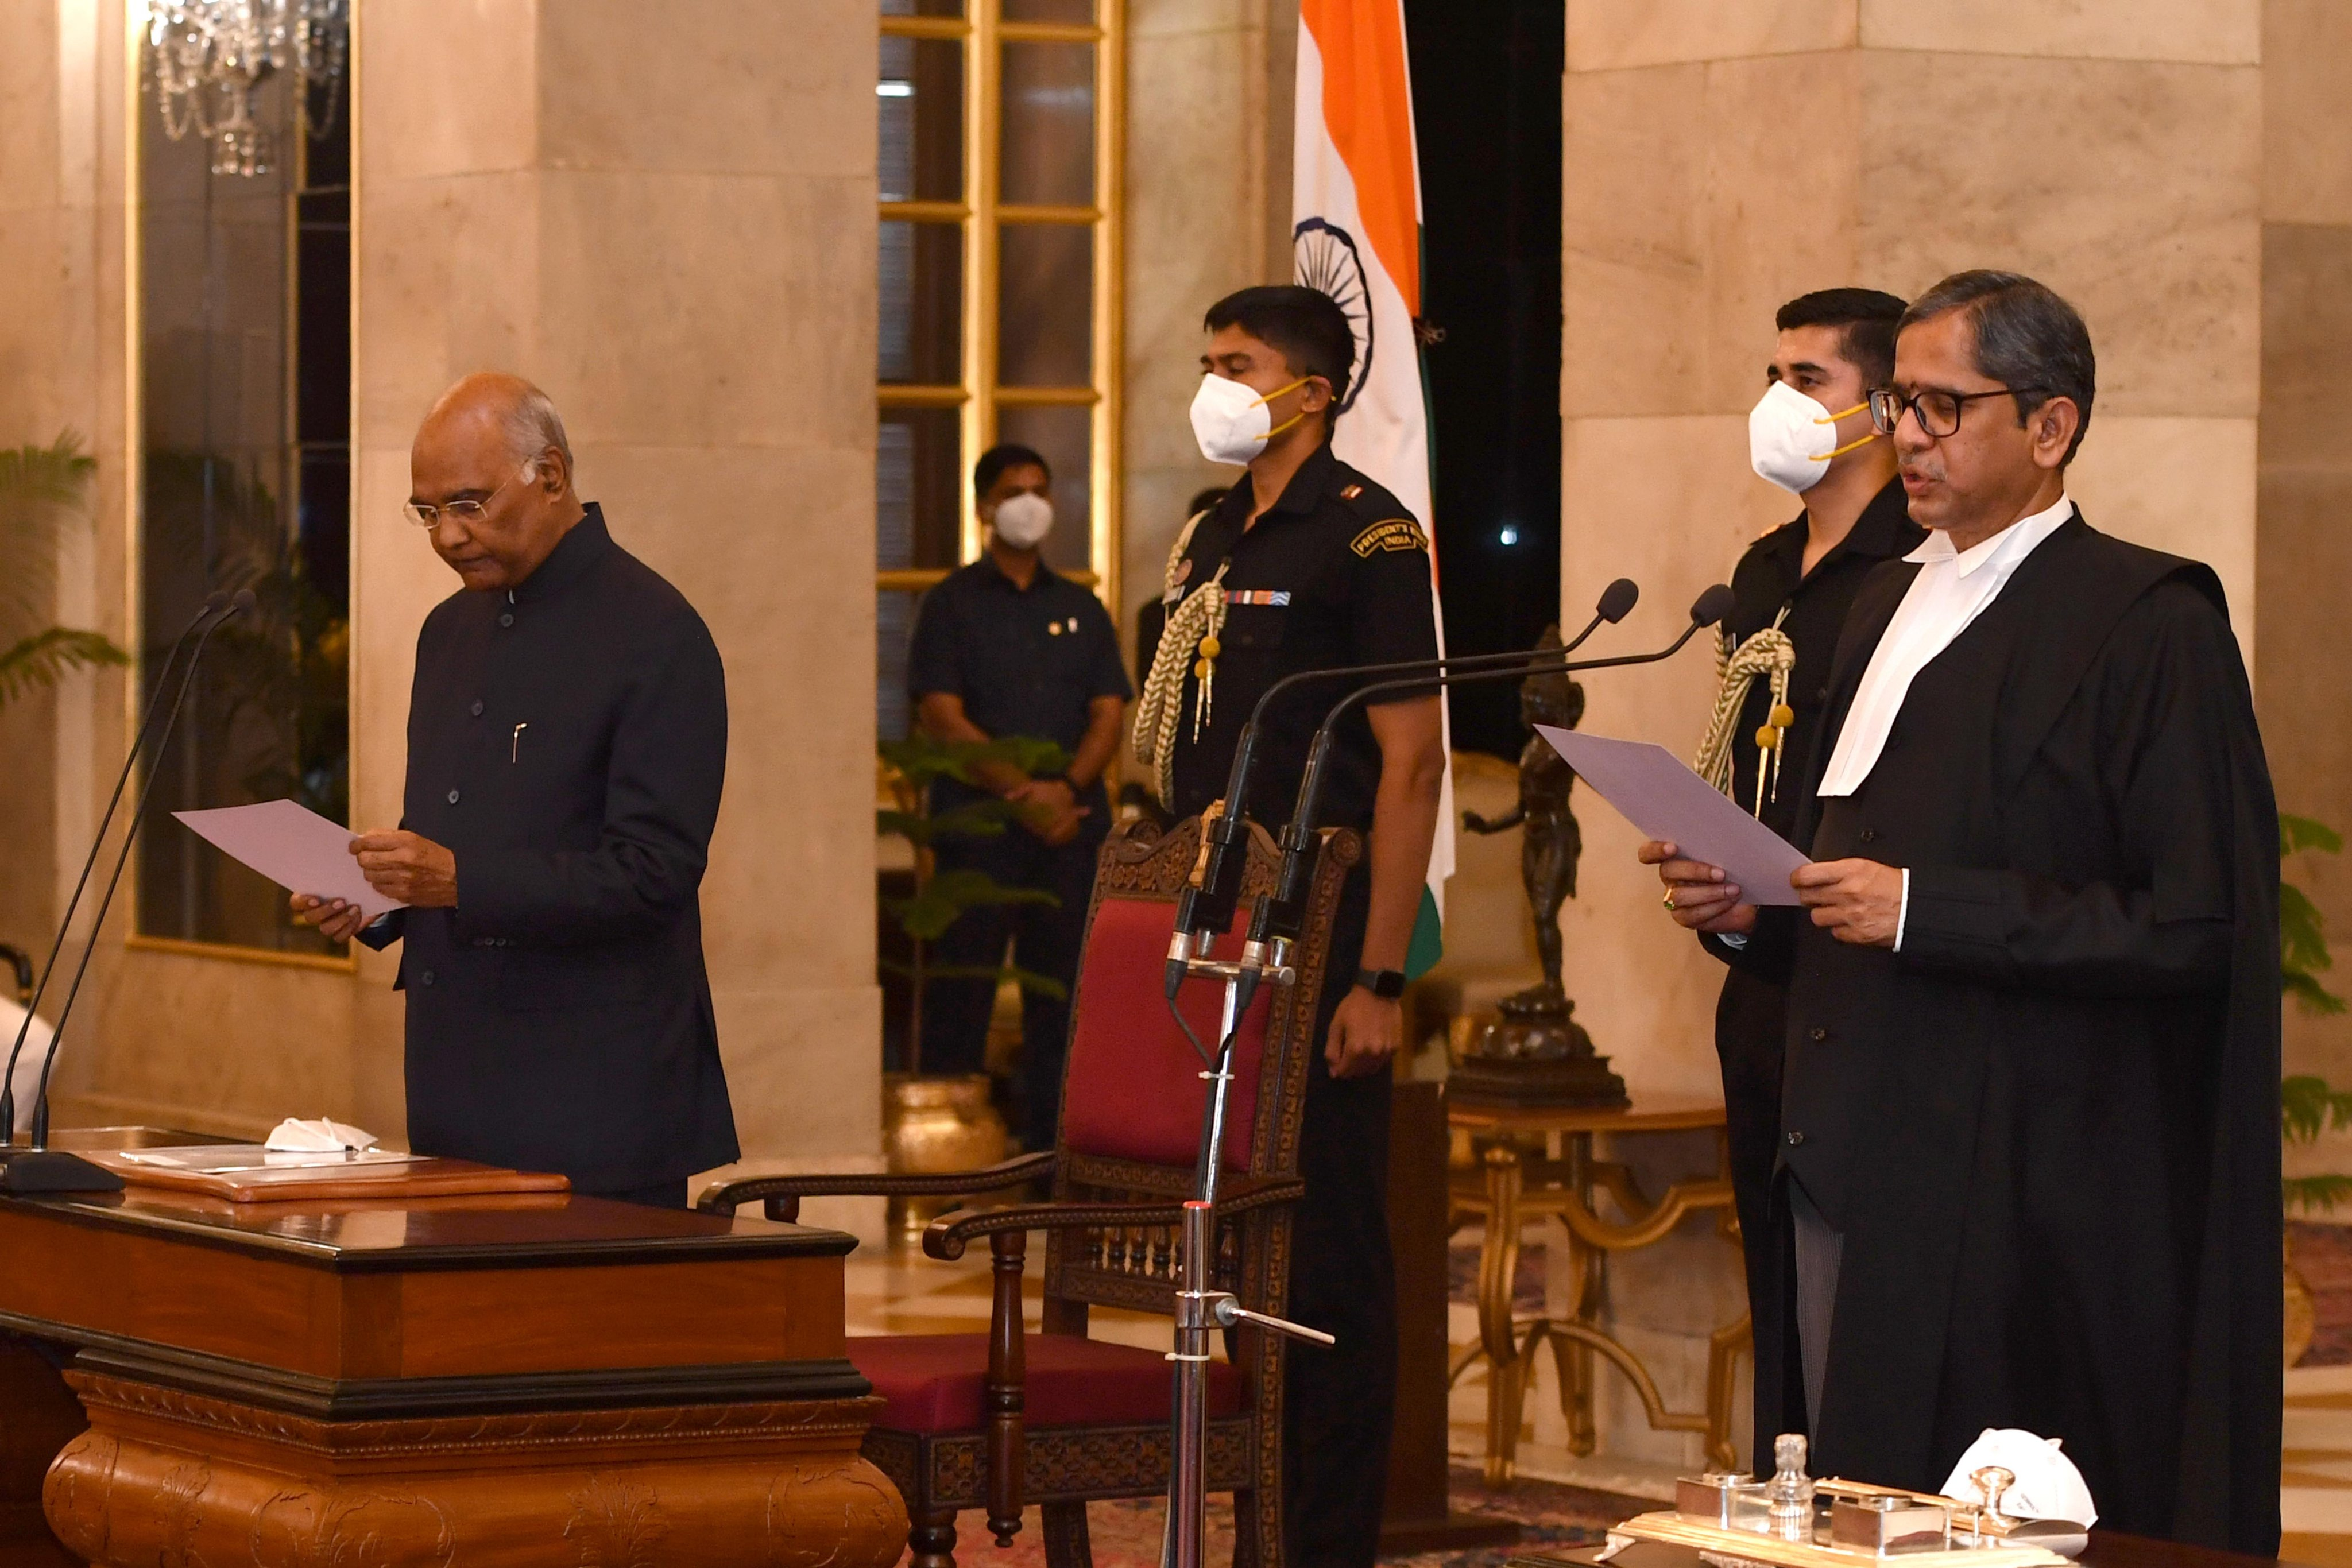 Justice NV Ramana sworn-in as new Chief Justice of India